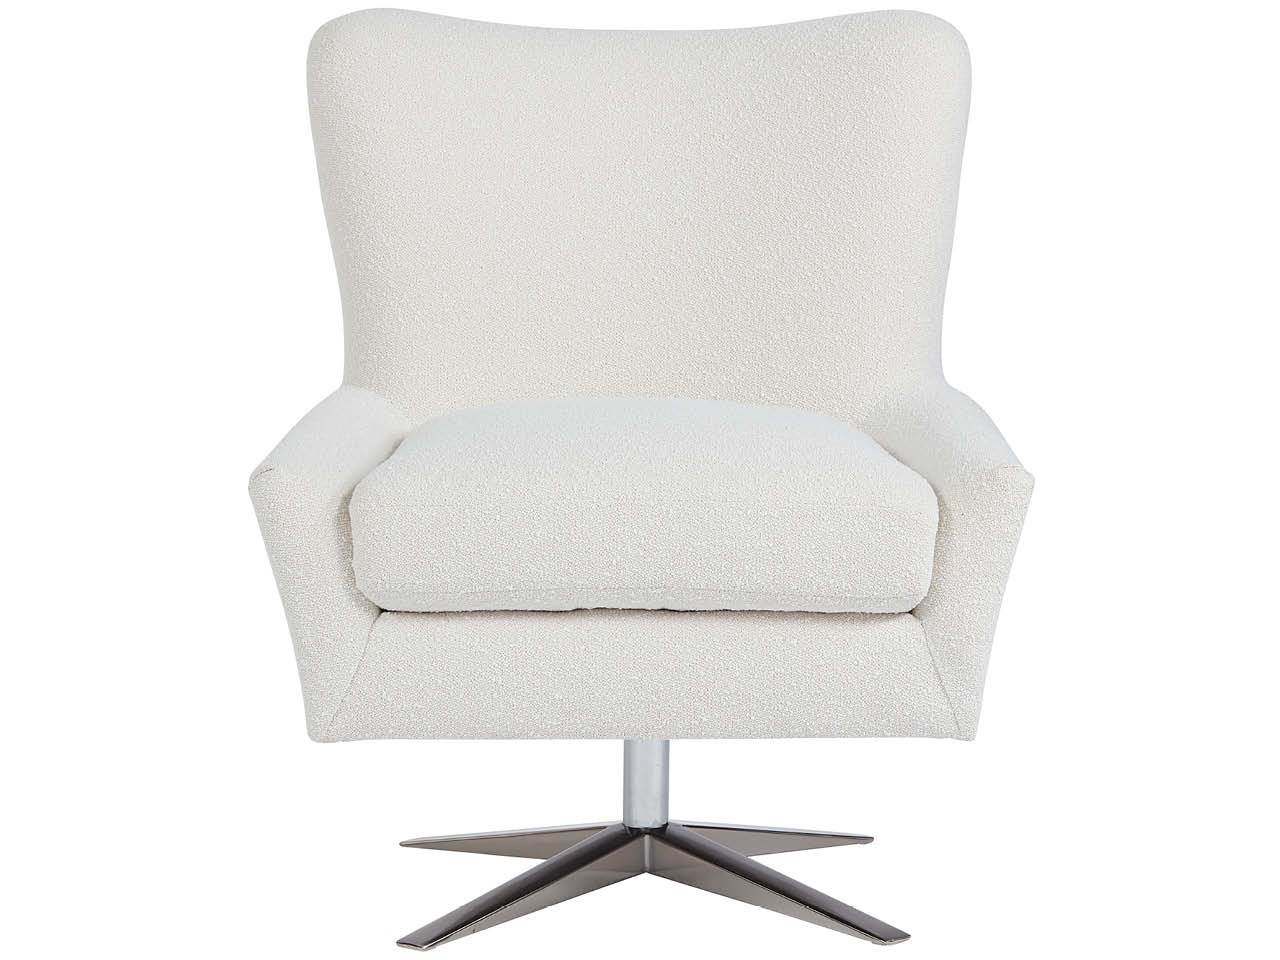 Everette Accent Chair - Special Order